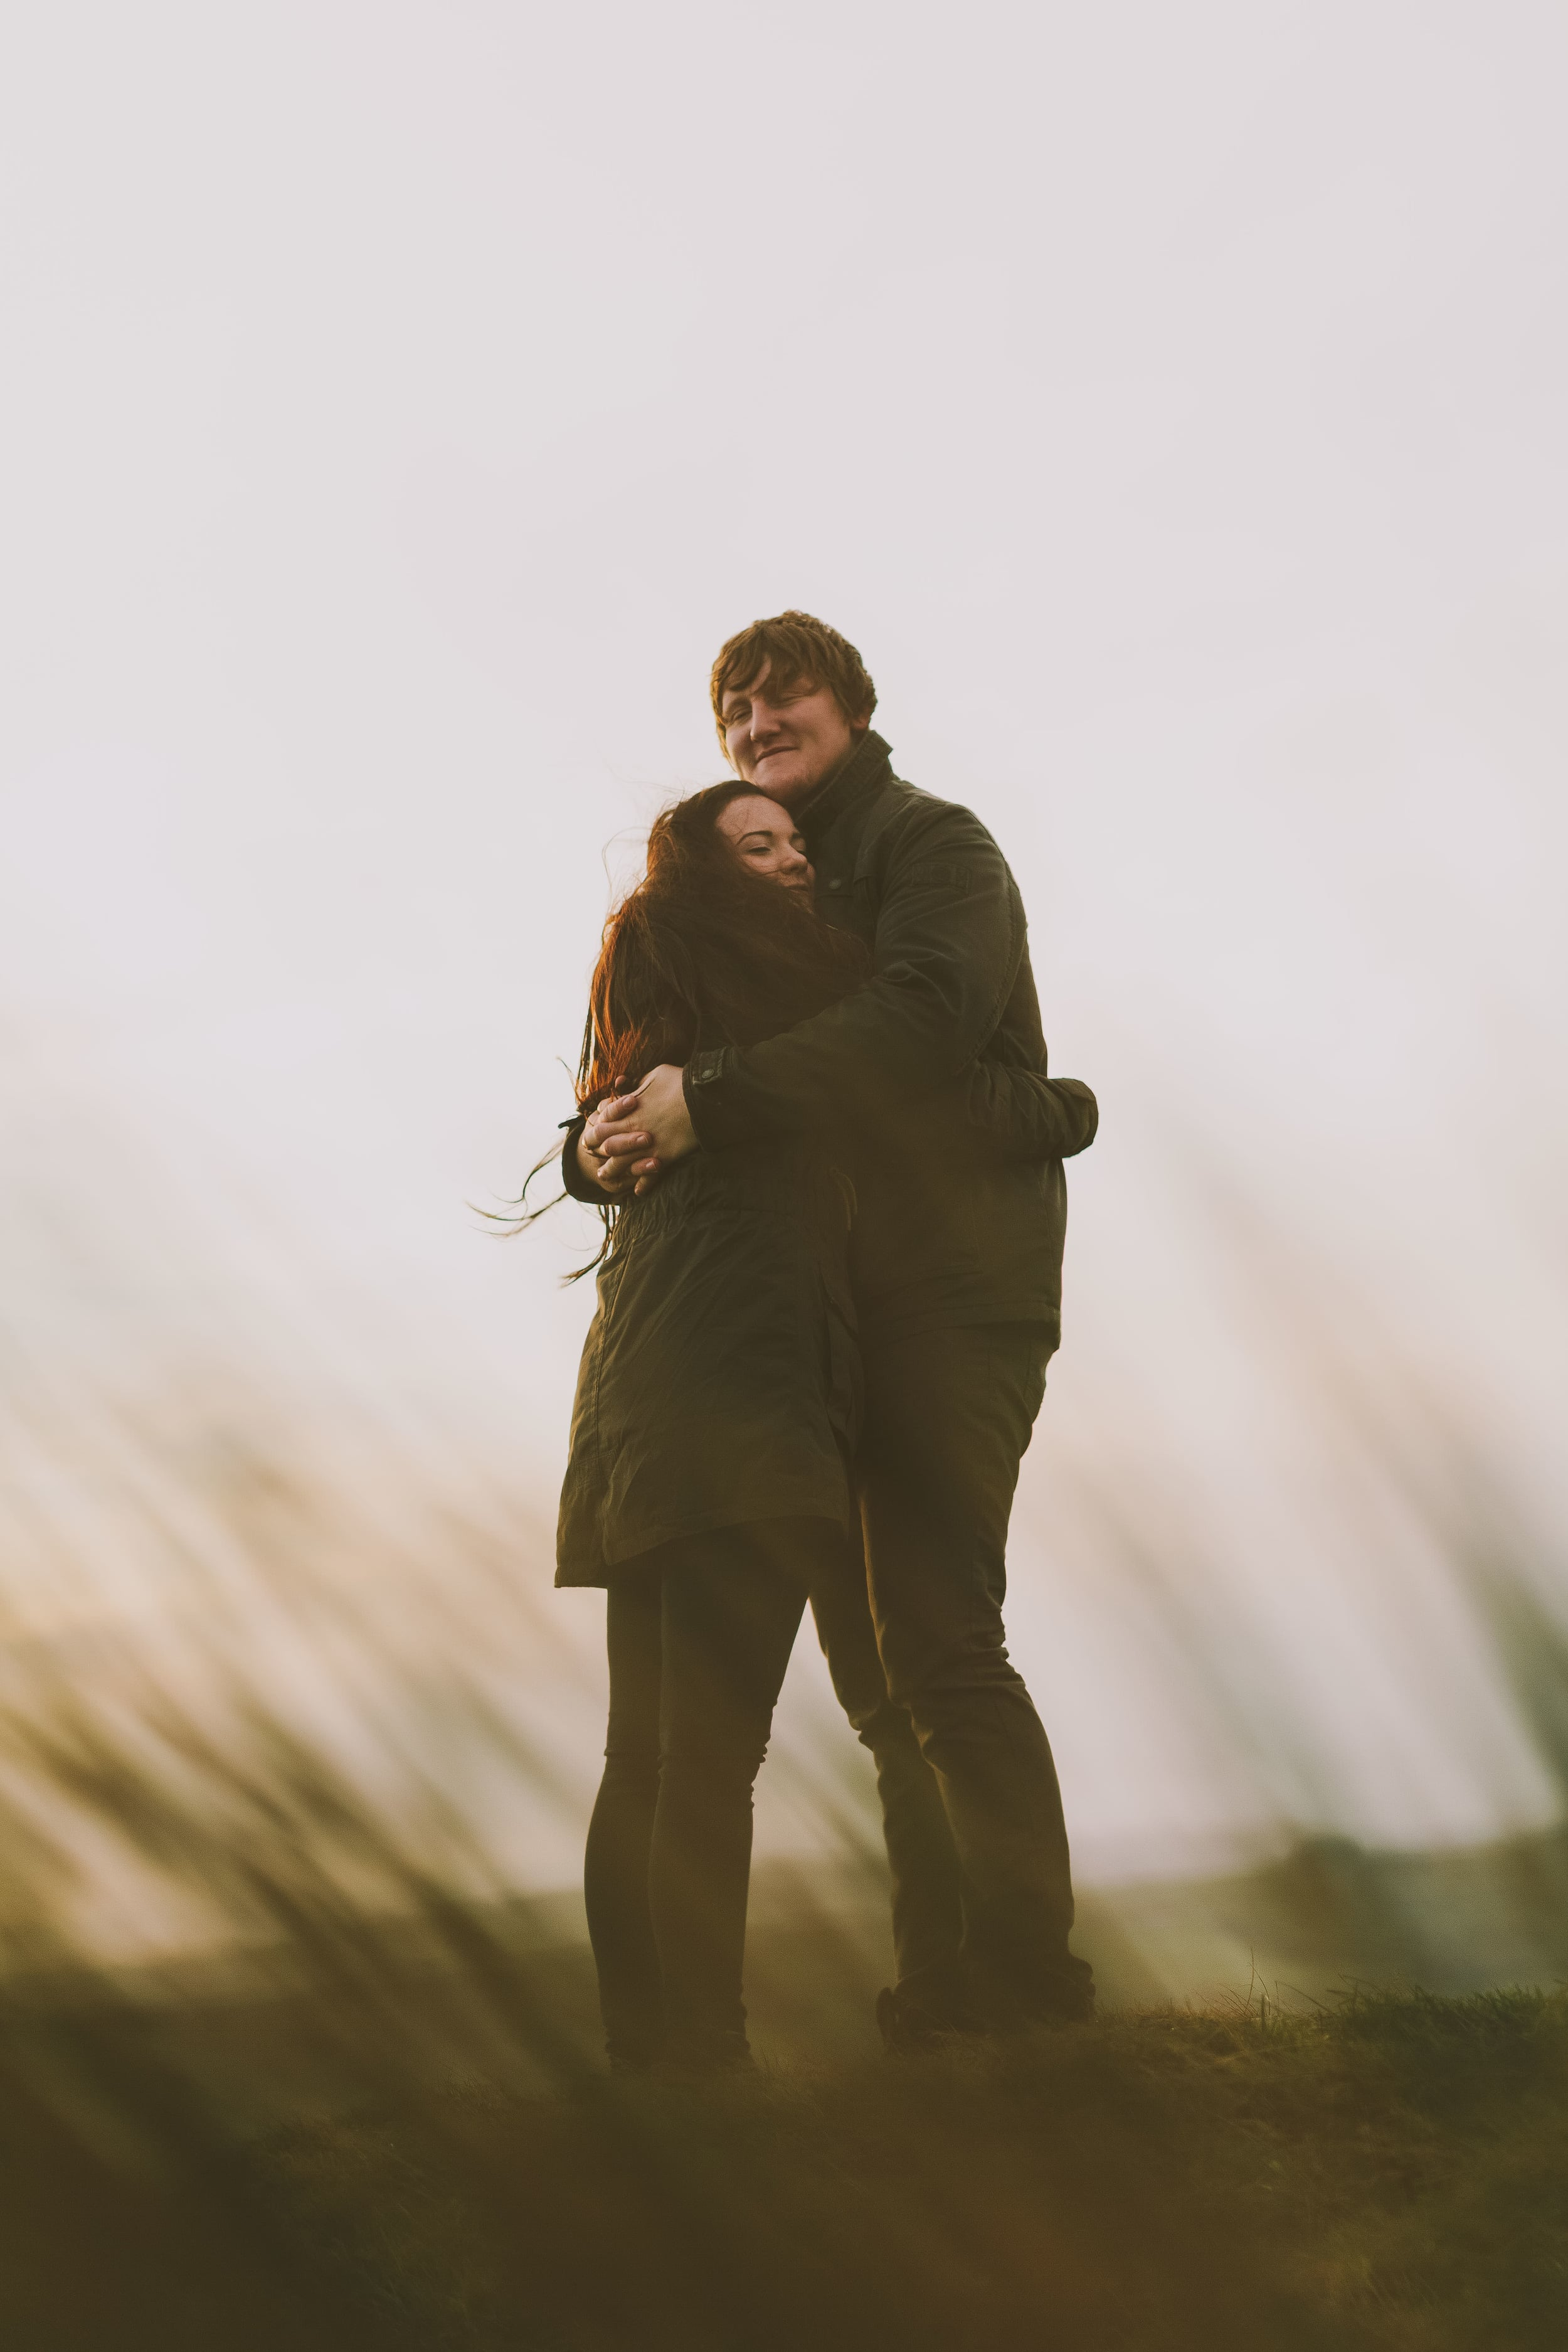 Northumberland Engagement Photograph // Rebecca & Chris // Holding each other